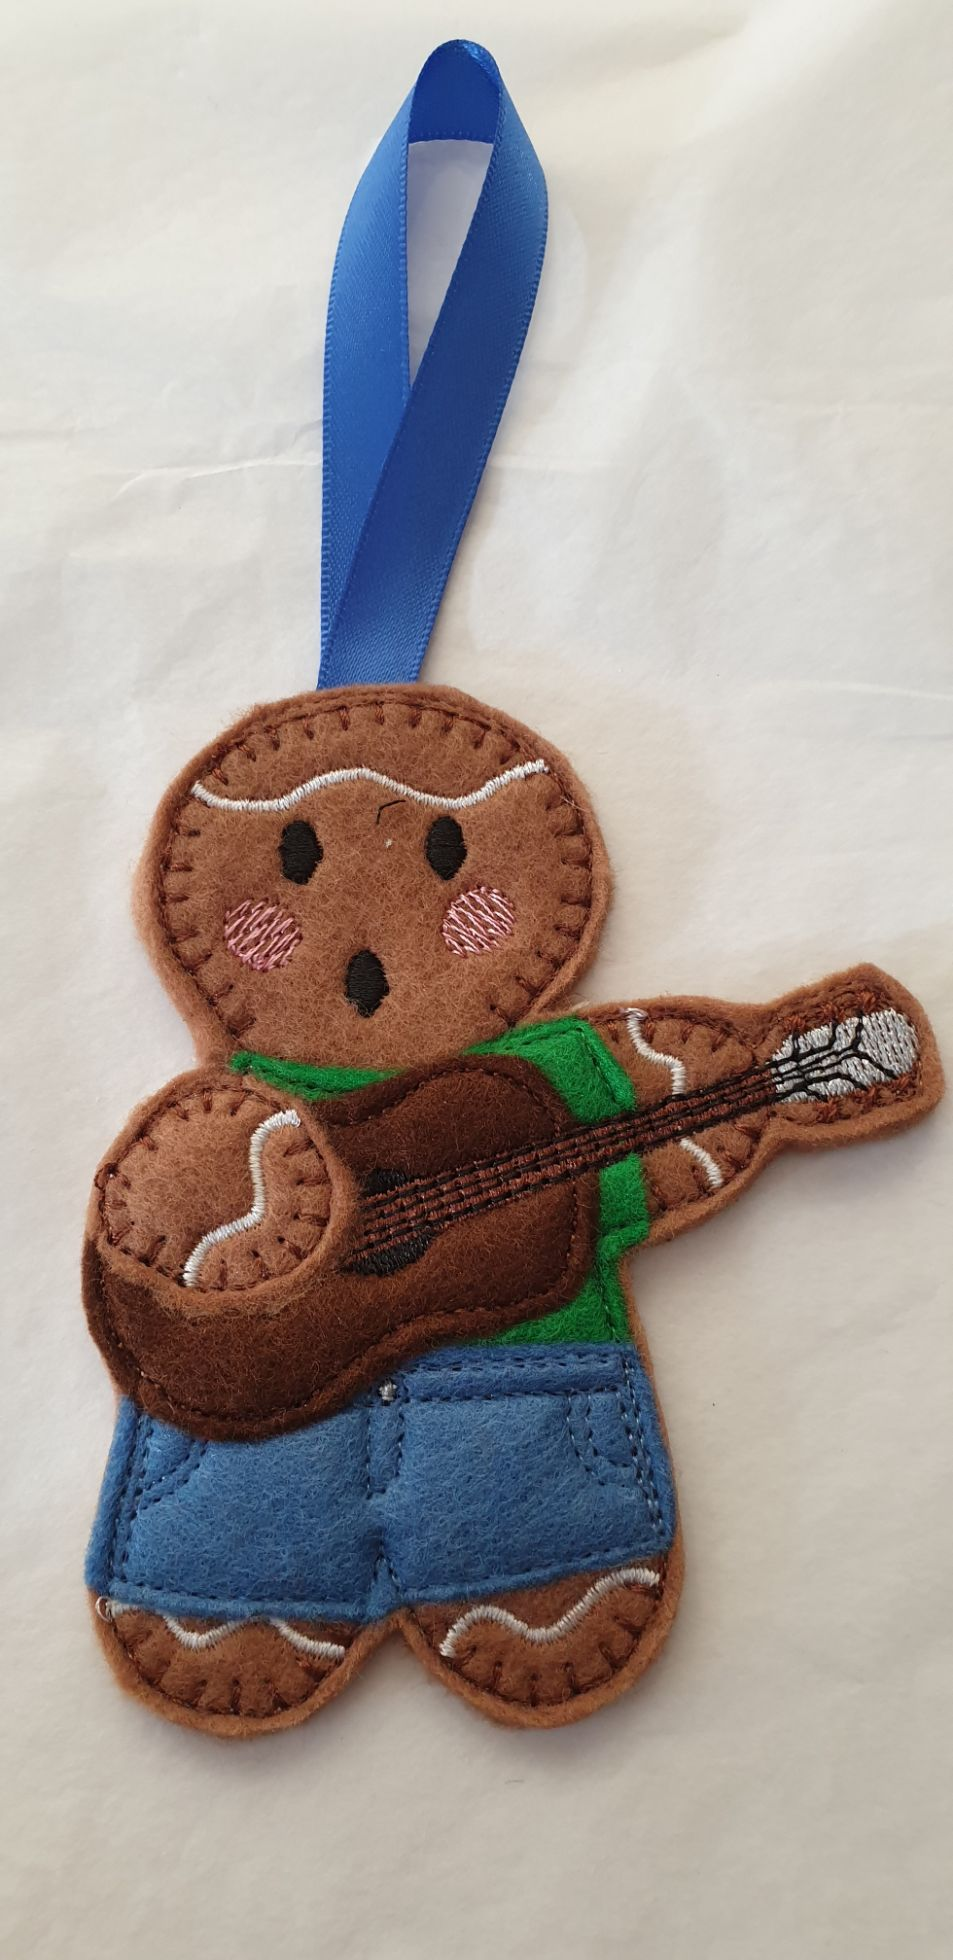 Guitarist Gingerbread